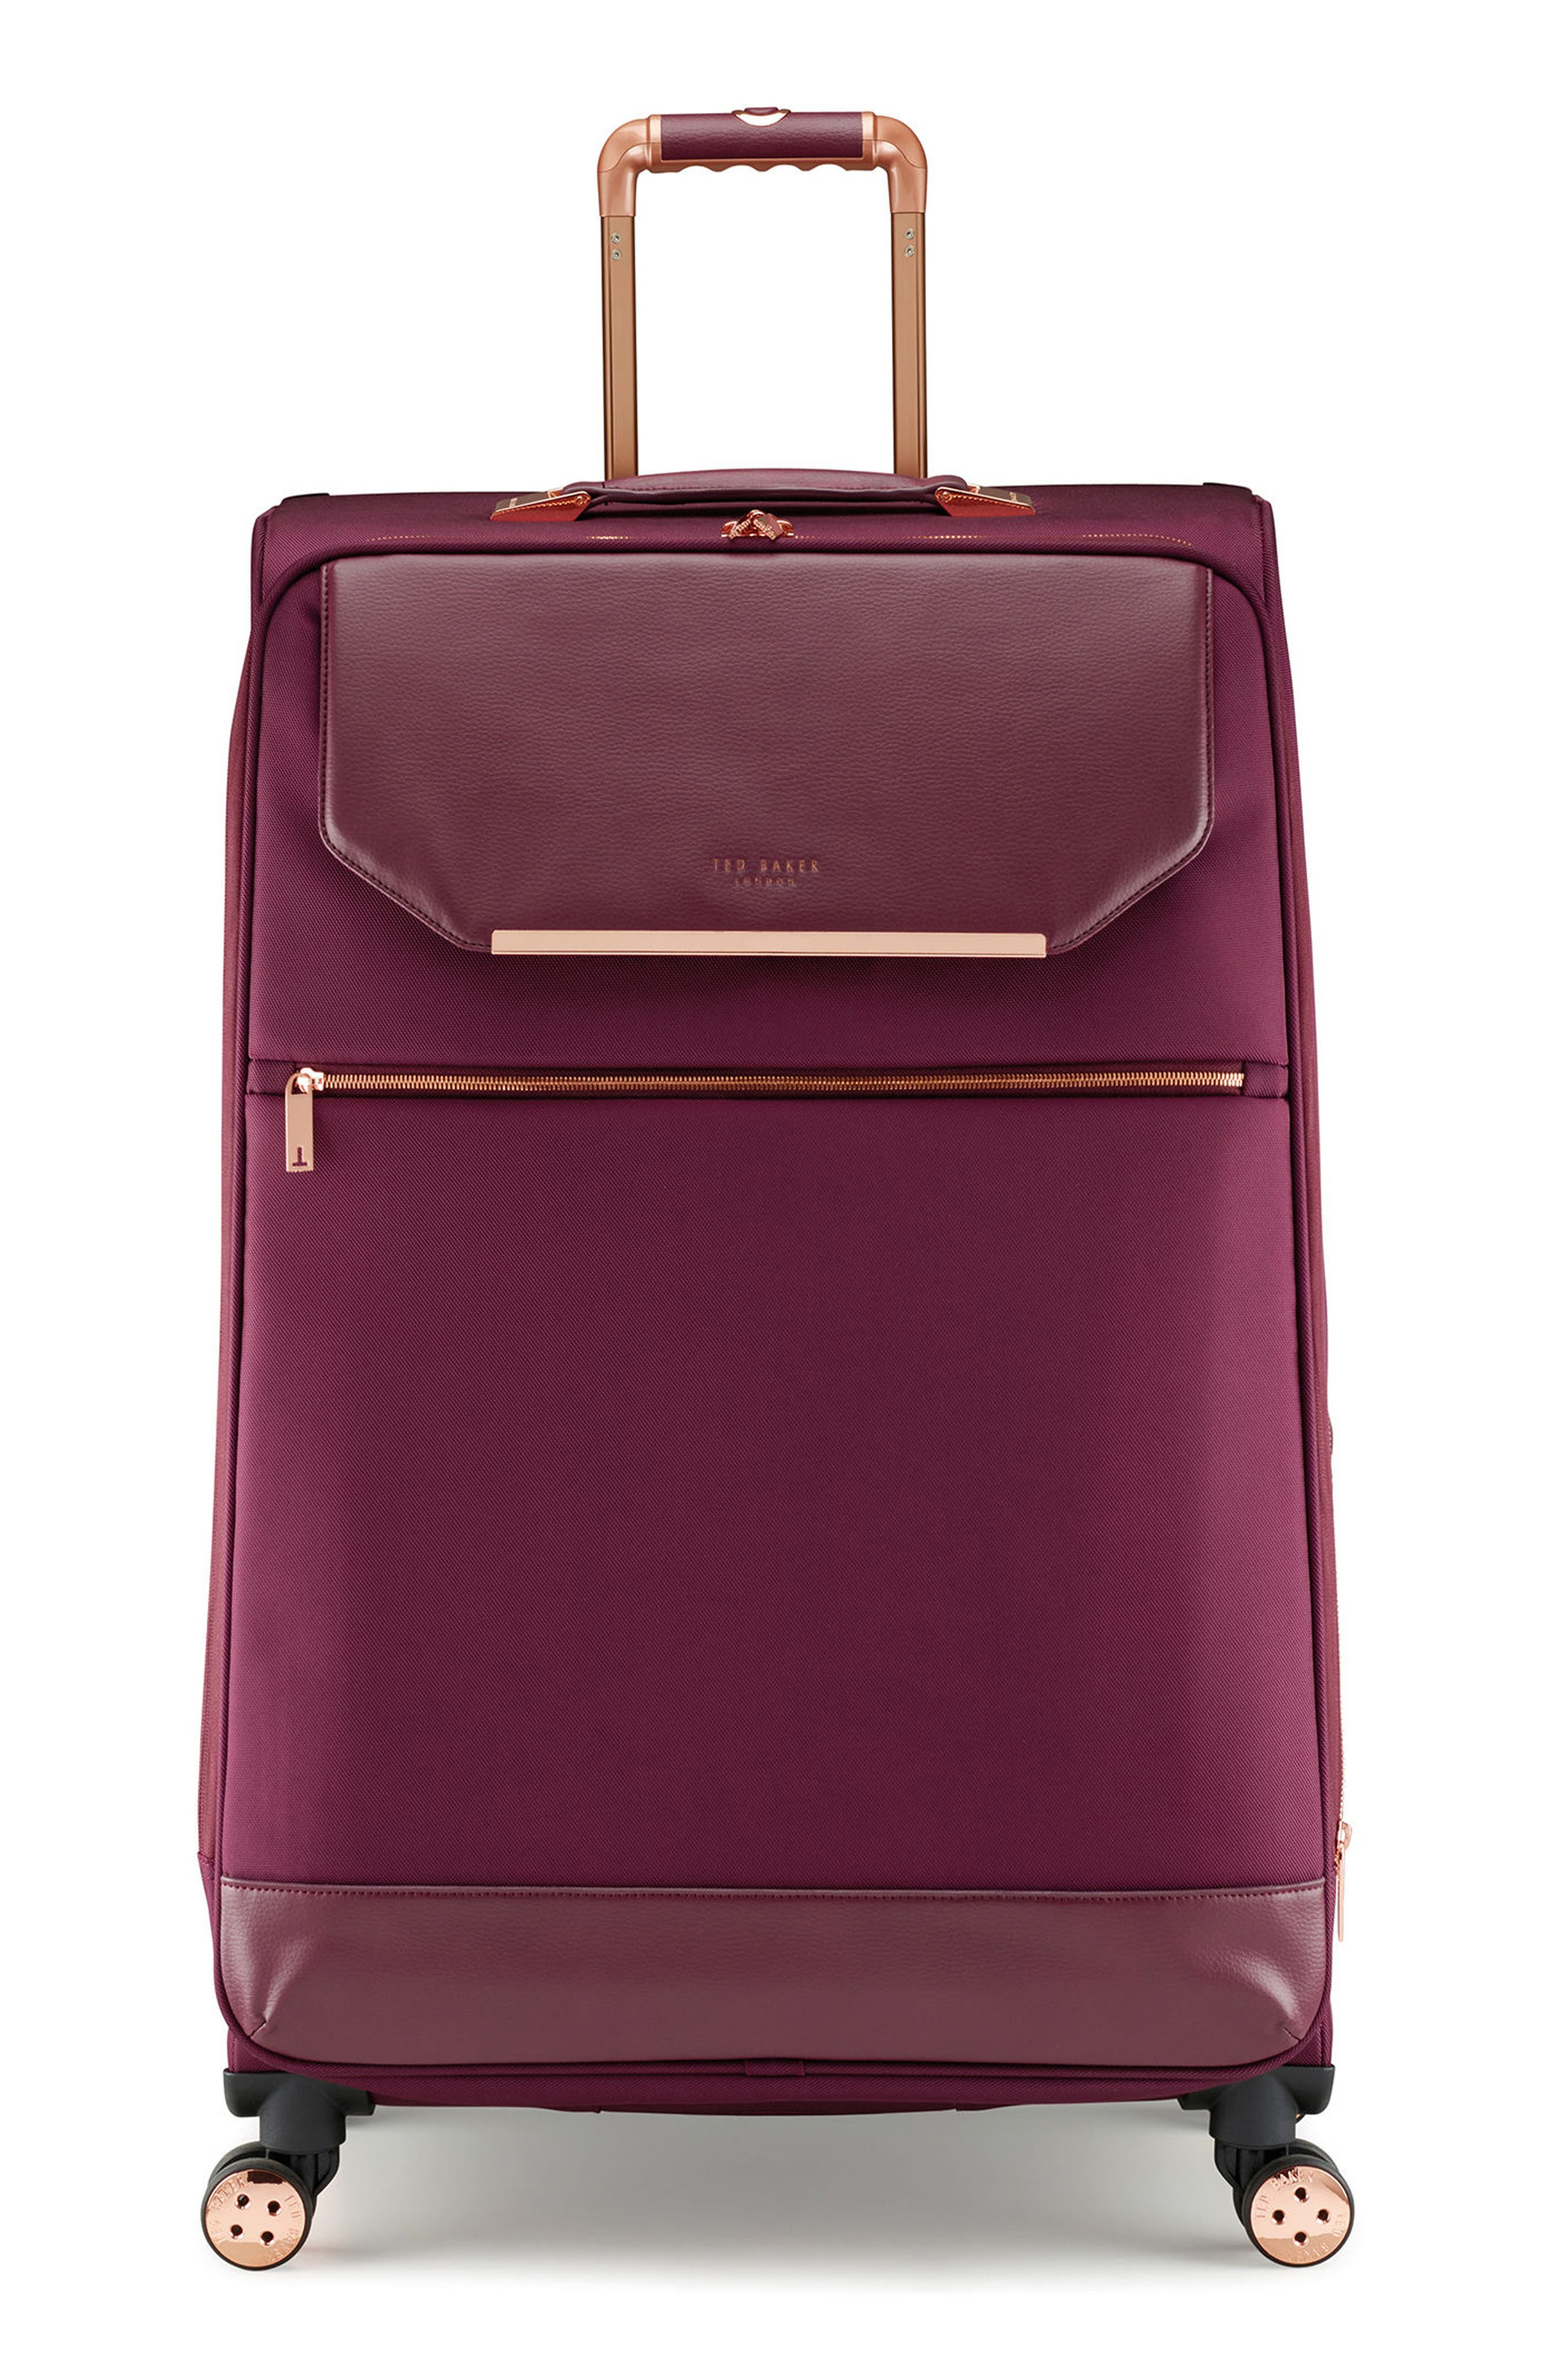 33-Inch Spinner Trolley Packing Case,                             Main thumbnail 1, color,                             Burgundy